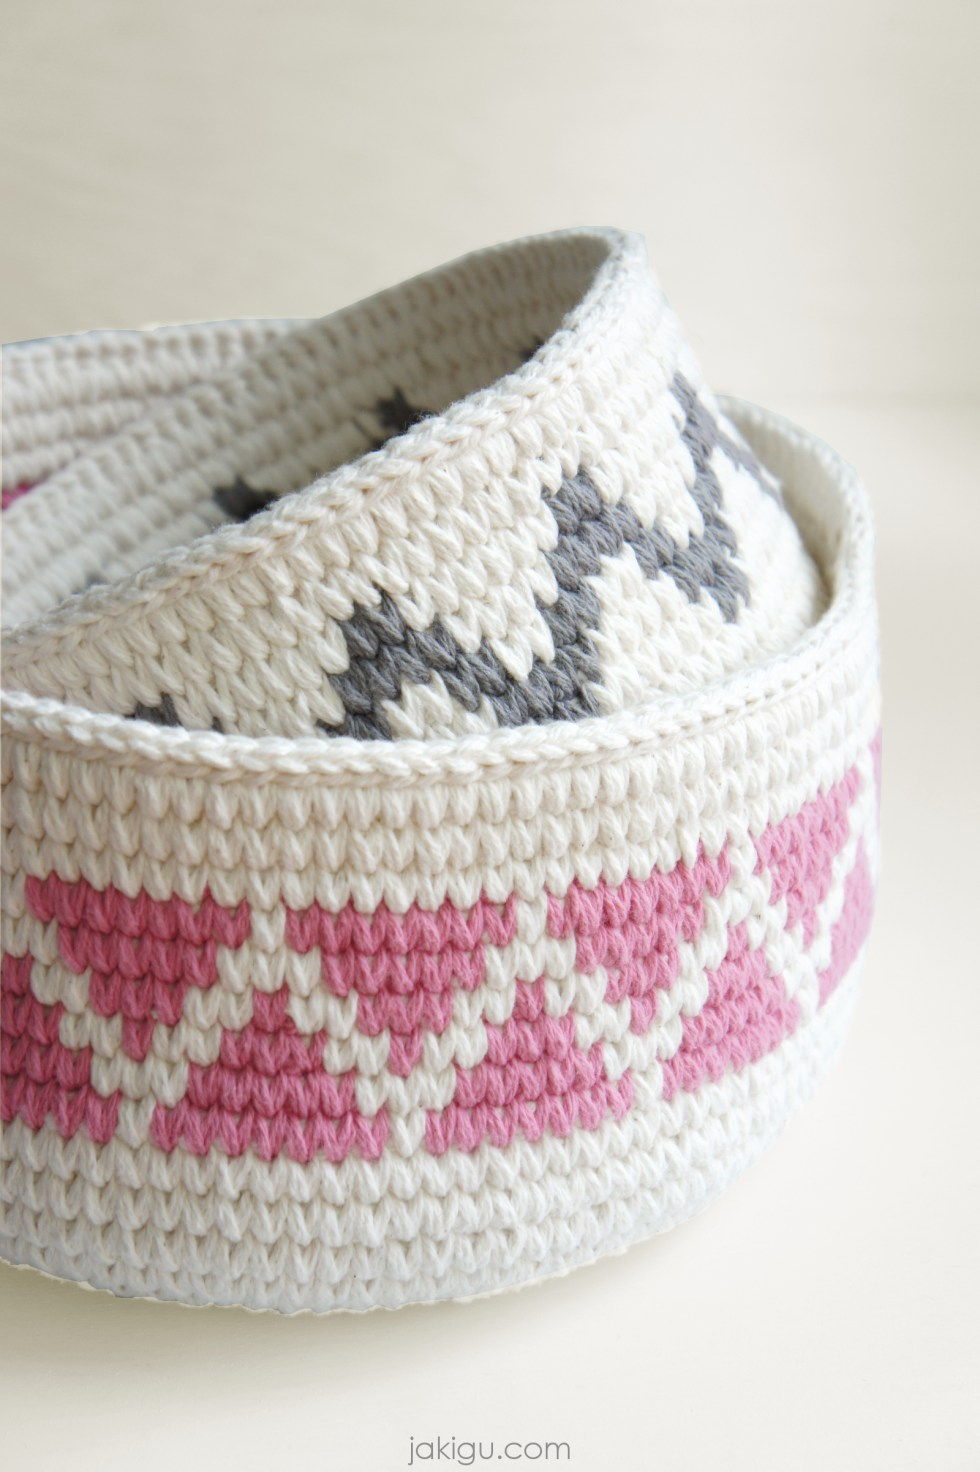 Geometric crochet baskets by jakigu.com